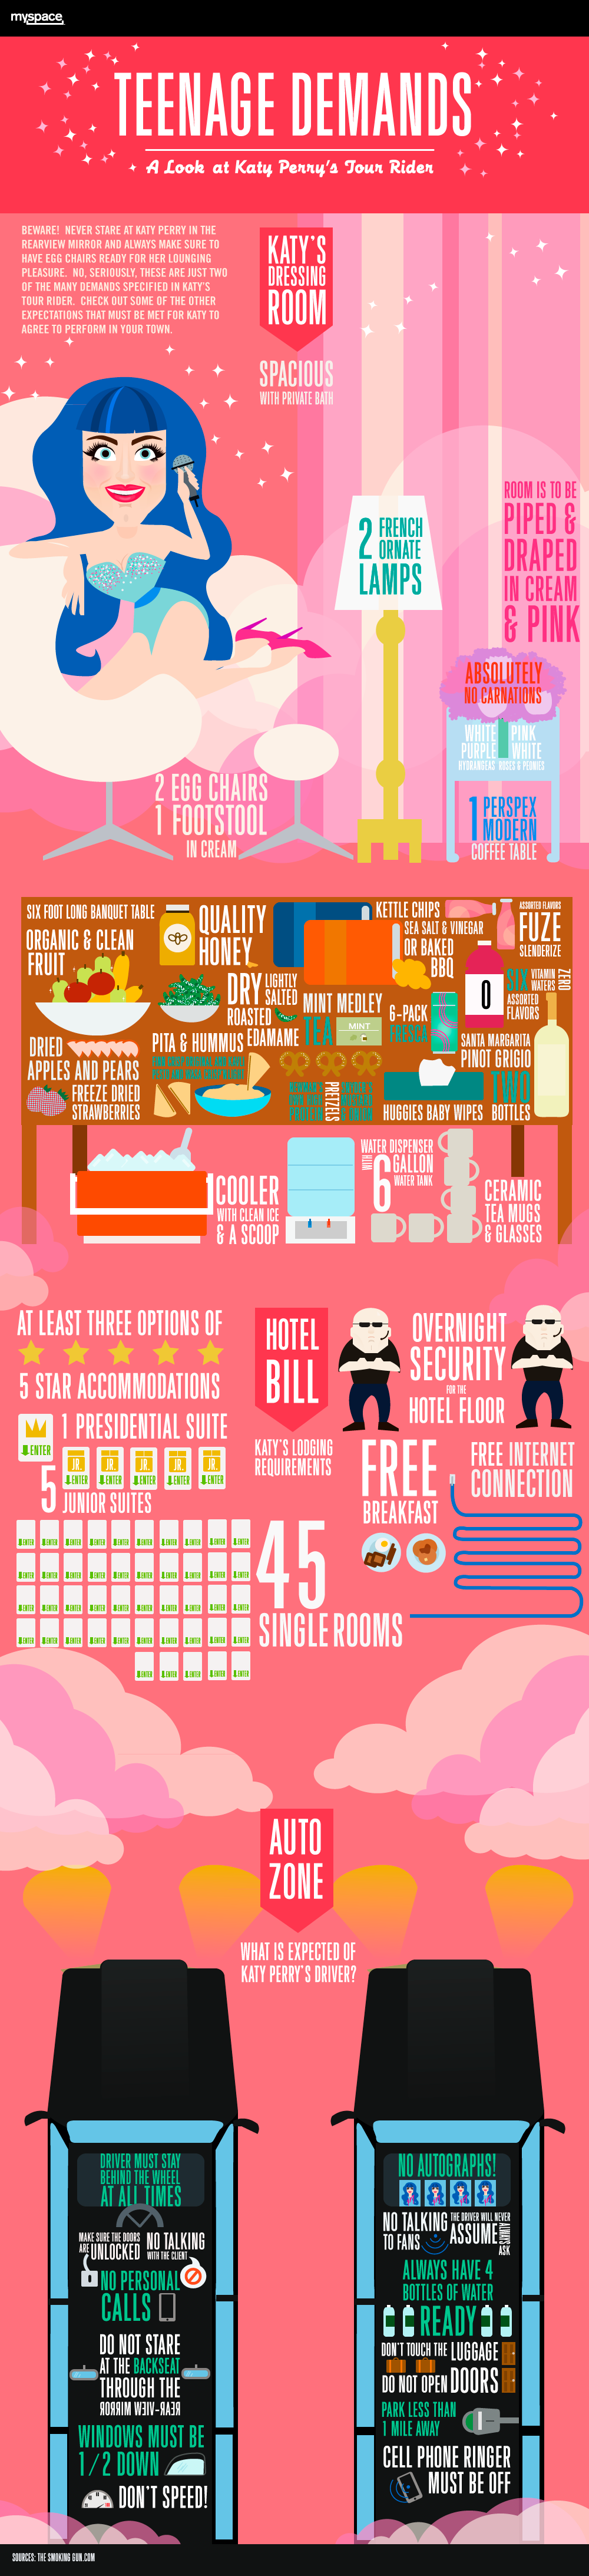 katy perry infographic, katy perry tour rider, katy perry tour infographic, katy perry tour demands